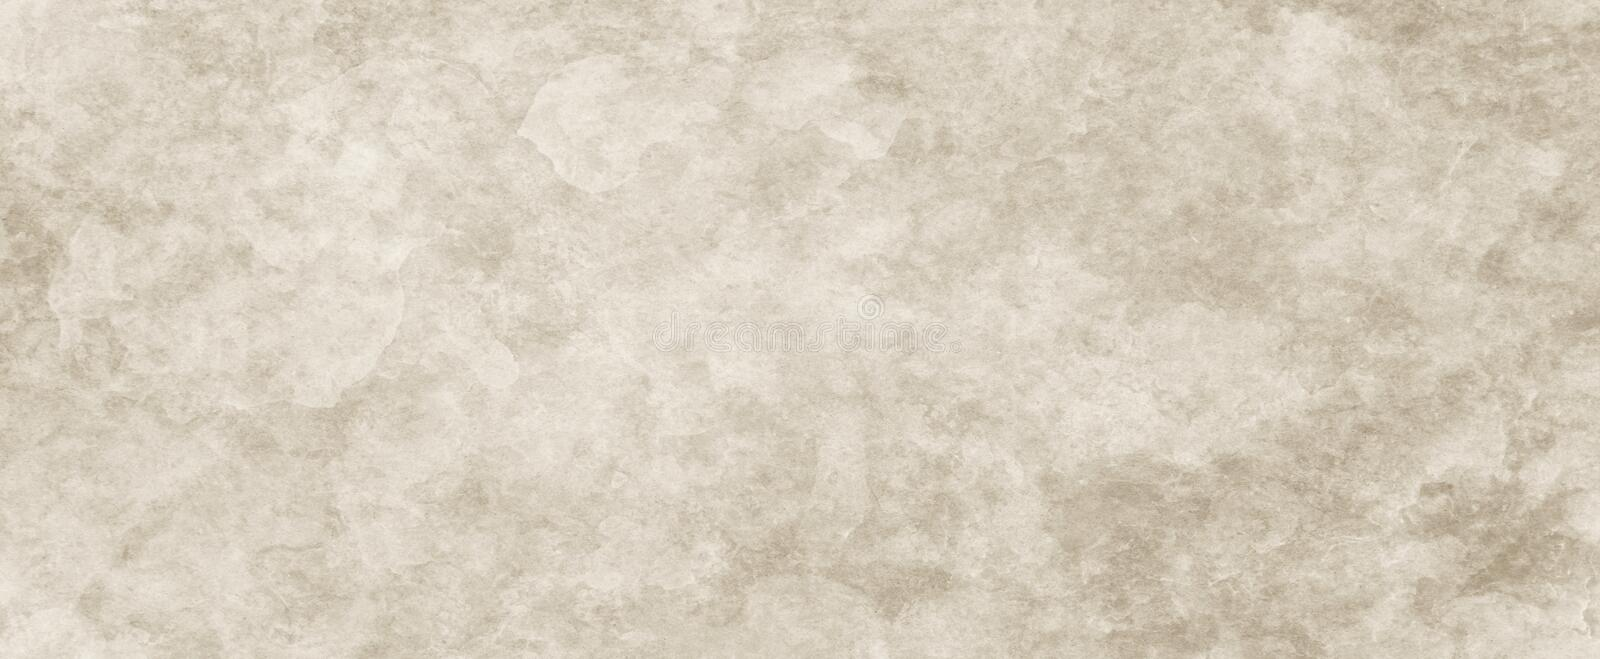 Background texture, brown paper with white textured vintage grunge and faded distressed old parchment royalty free stock photography